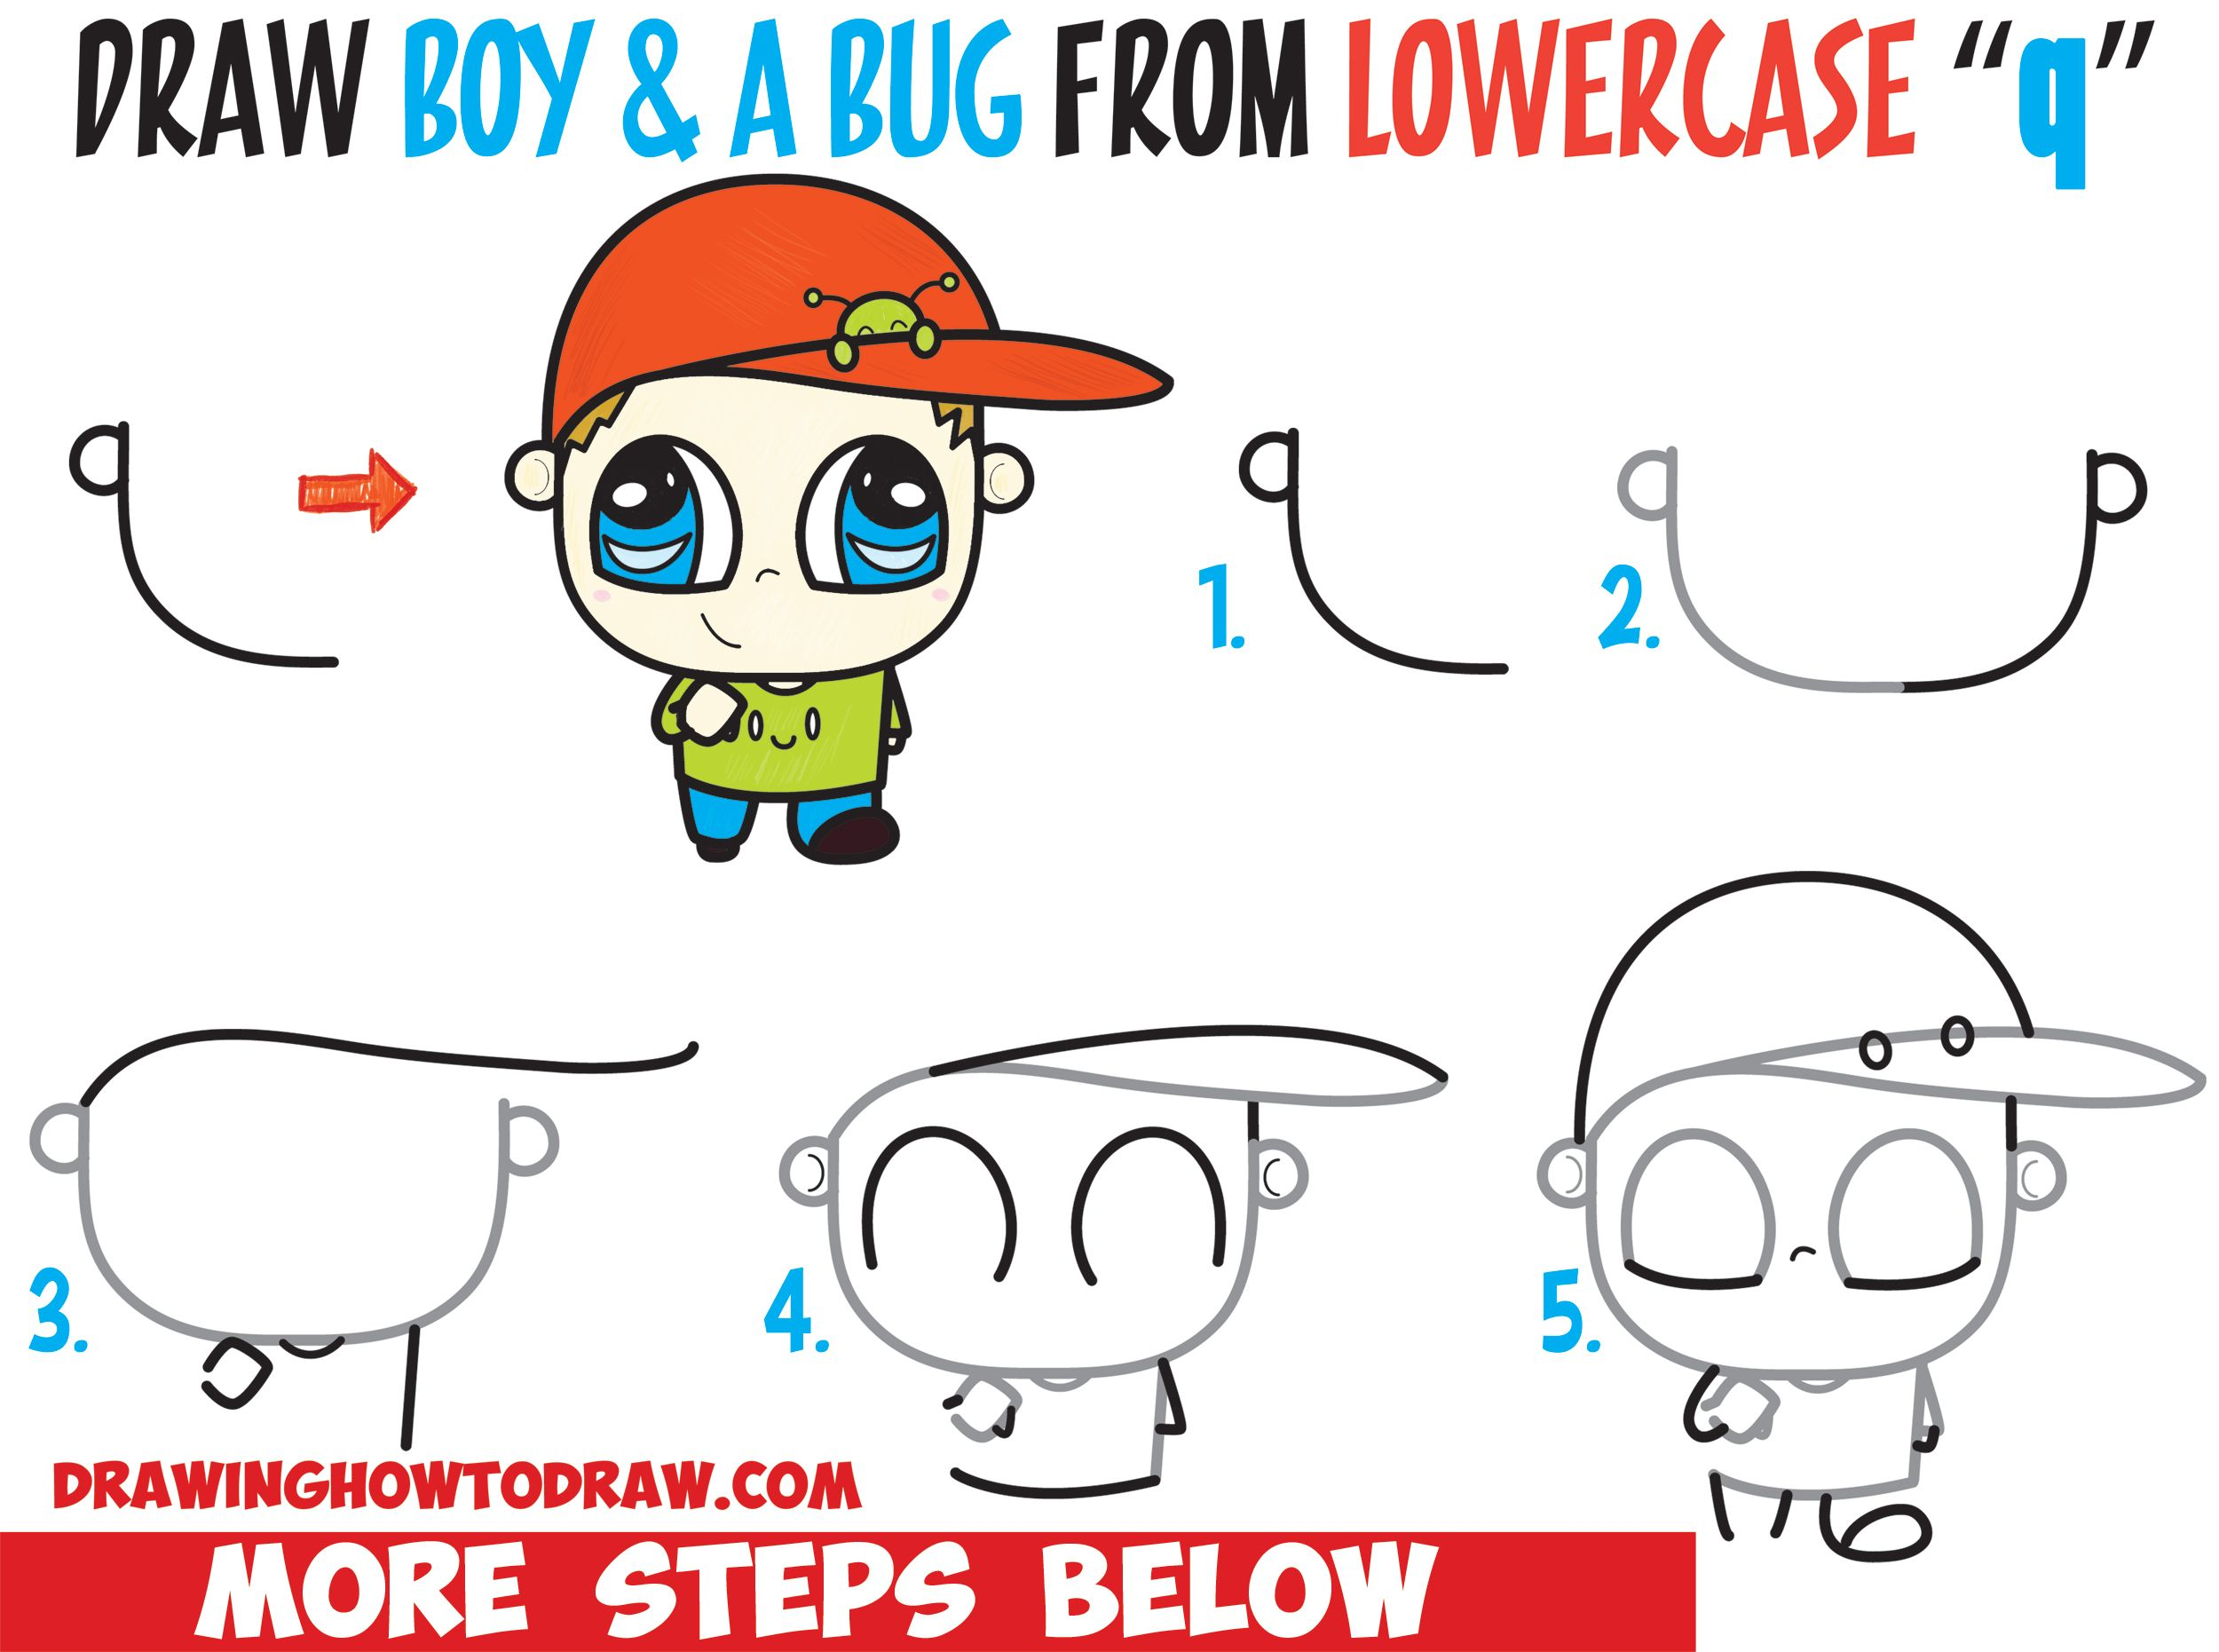 How To Draw A Chibi Boy With A Cute Bug On His Baseball Hat Easy Step By Step Drawing Tutorial For Kids Beginners How To Draw Step By Step Drawing